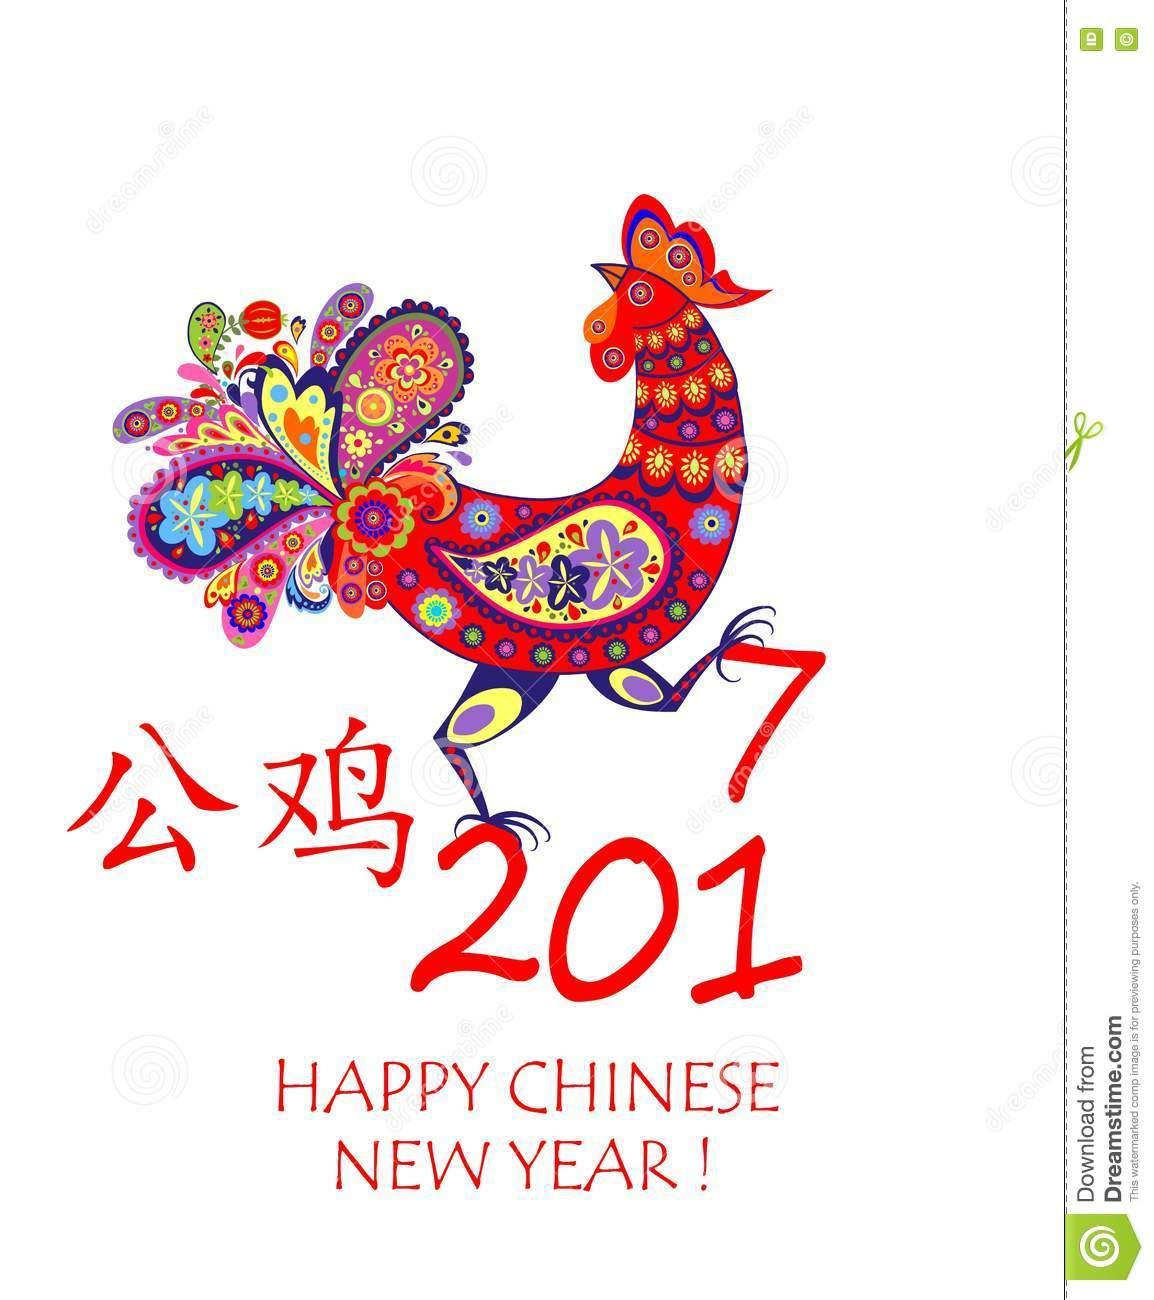 Greeting Card For Chinese New Year With Decorative Rooster Stock ...